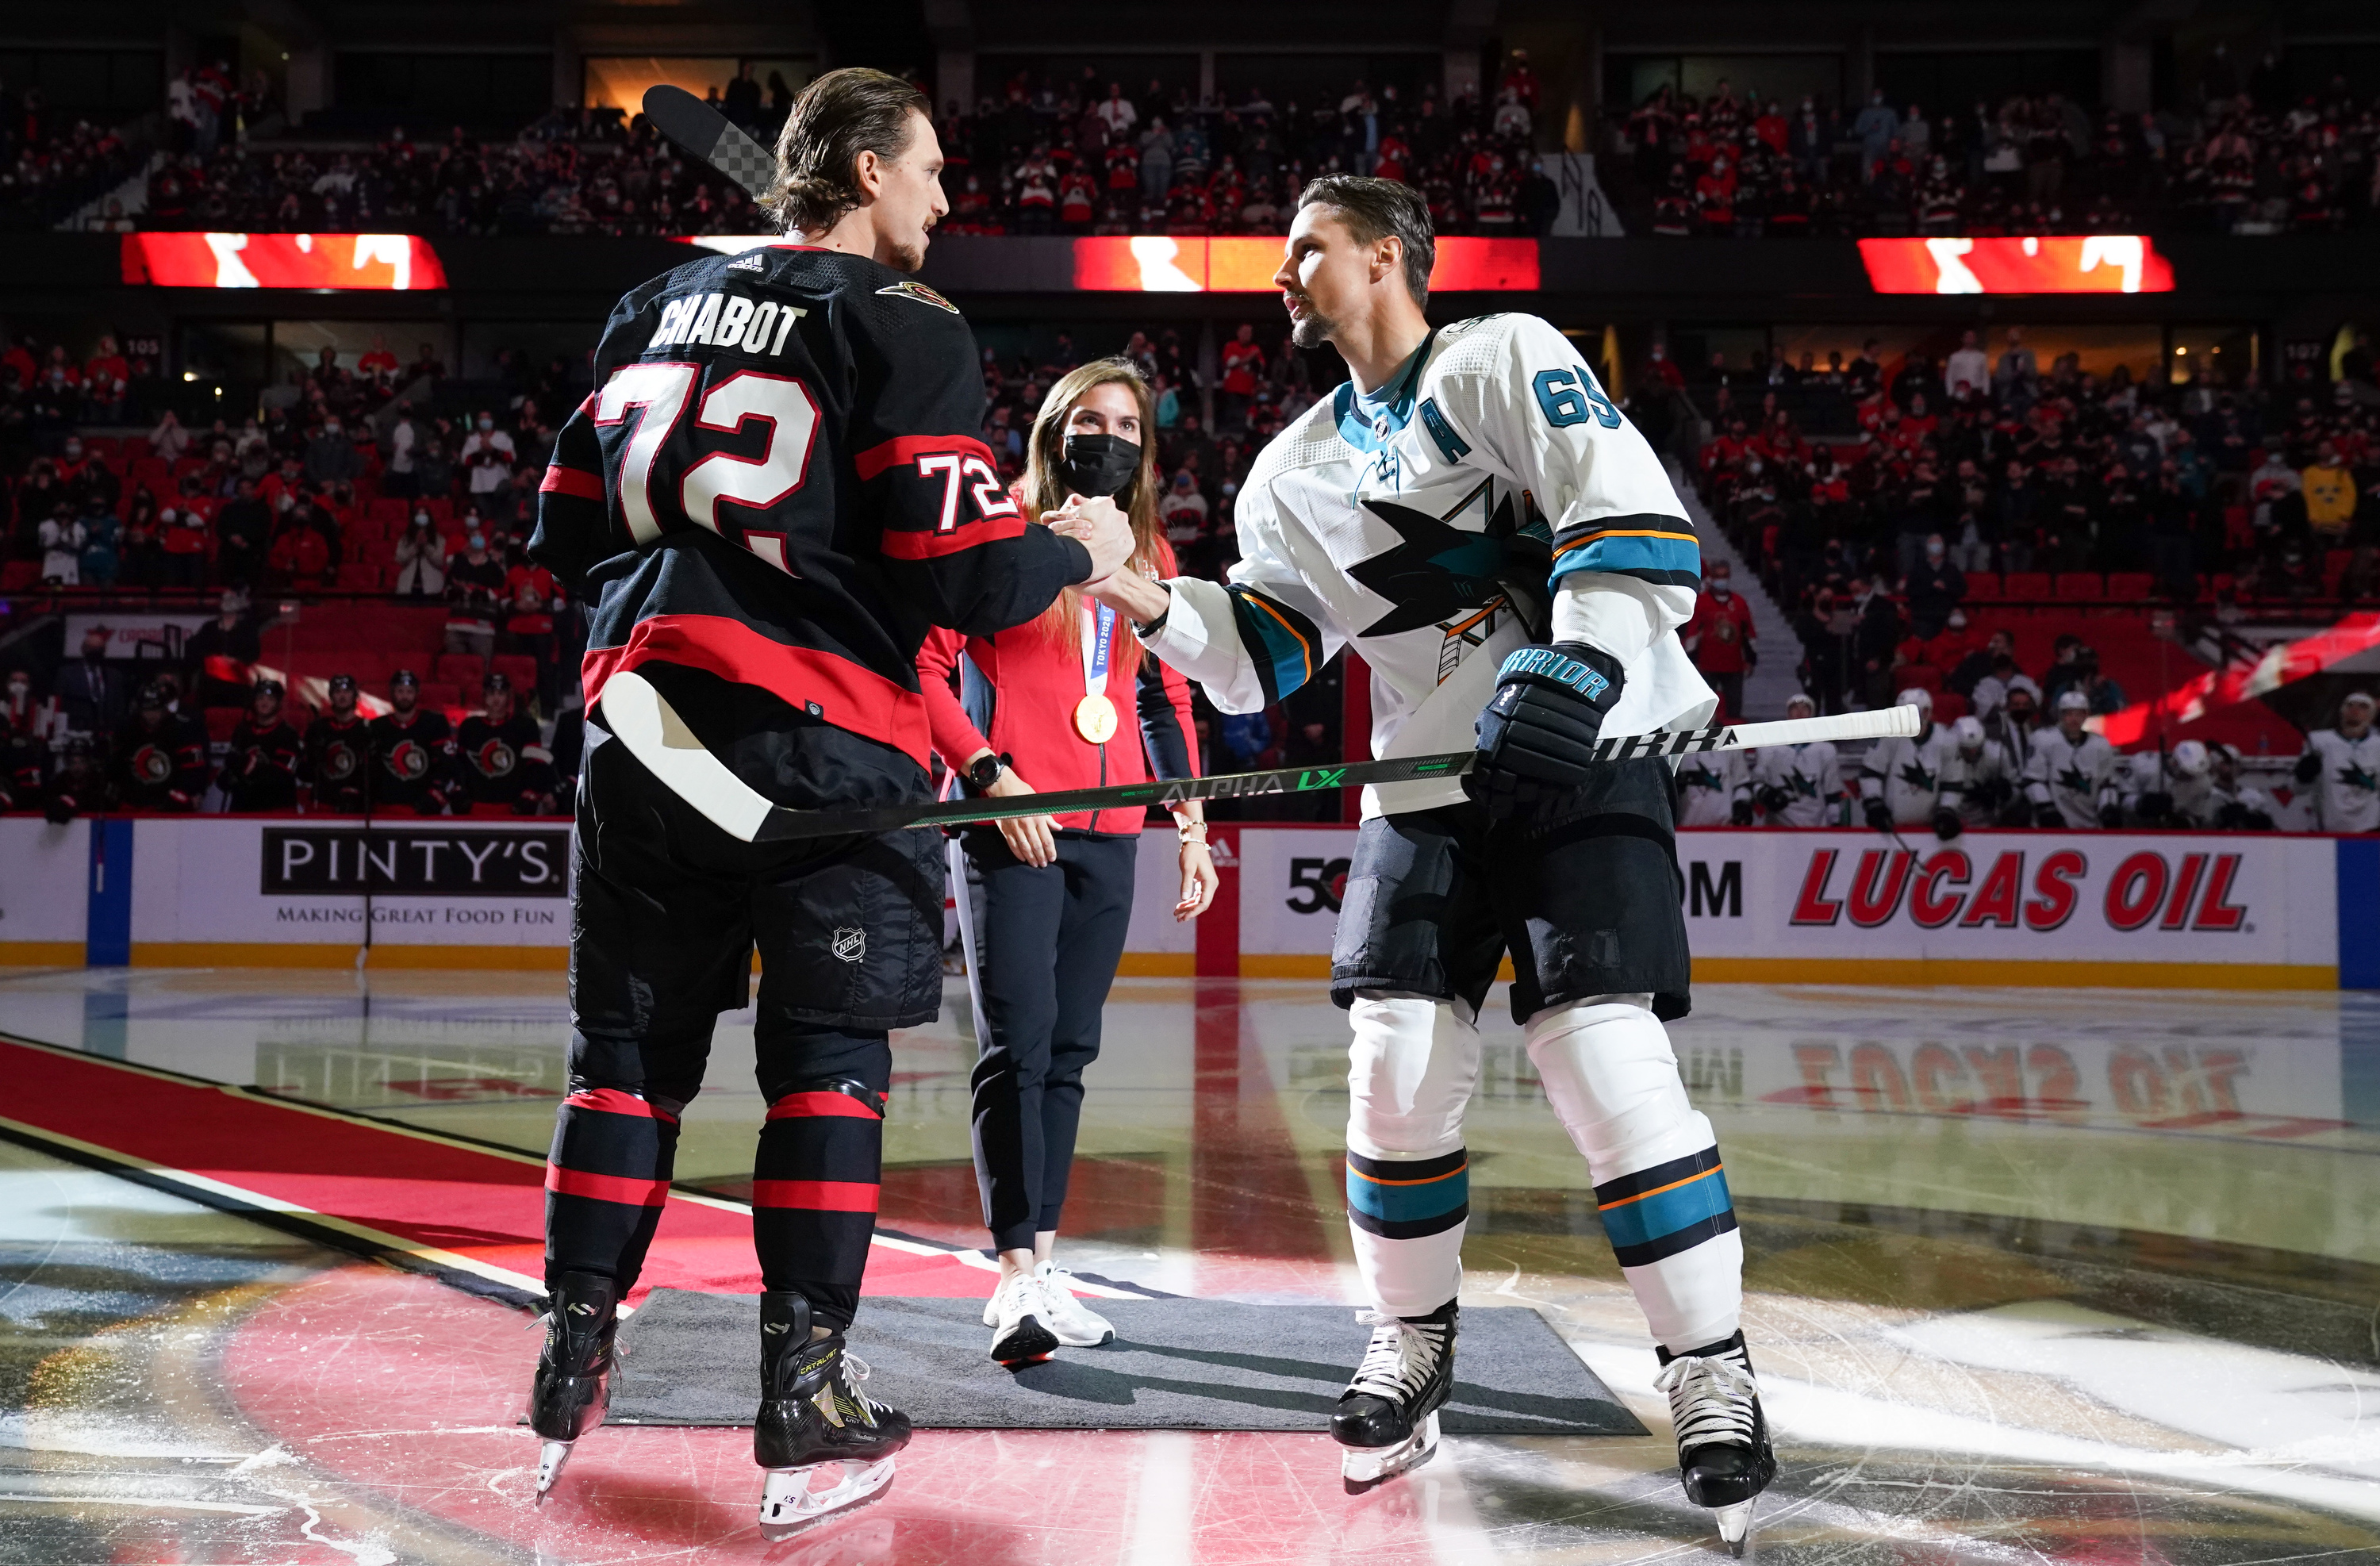 Thomas Chabot #72 of the Ottawa Senators and Erik Karlsson #65 of the San Jose Sharks shake hands after a ceremonial face-off at Canadian Tire Centre on October 21, 2021 in Ottawa, Ontario, Canada.